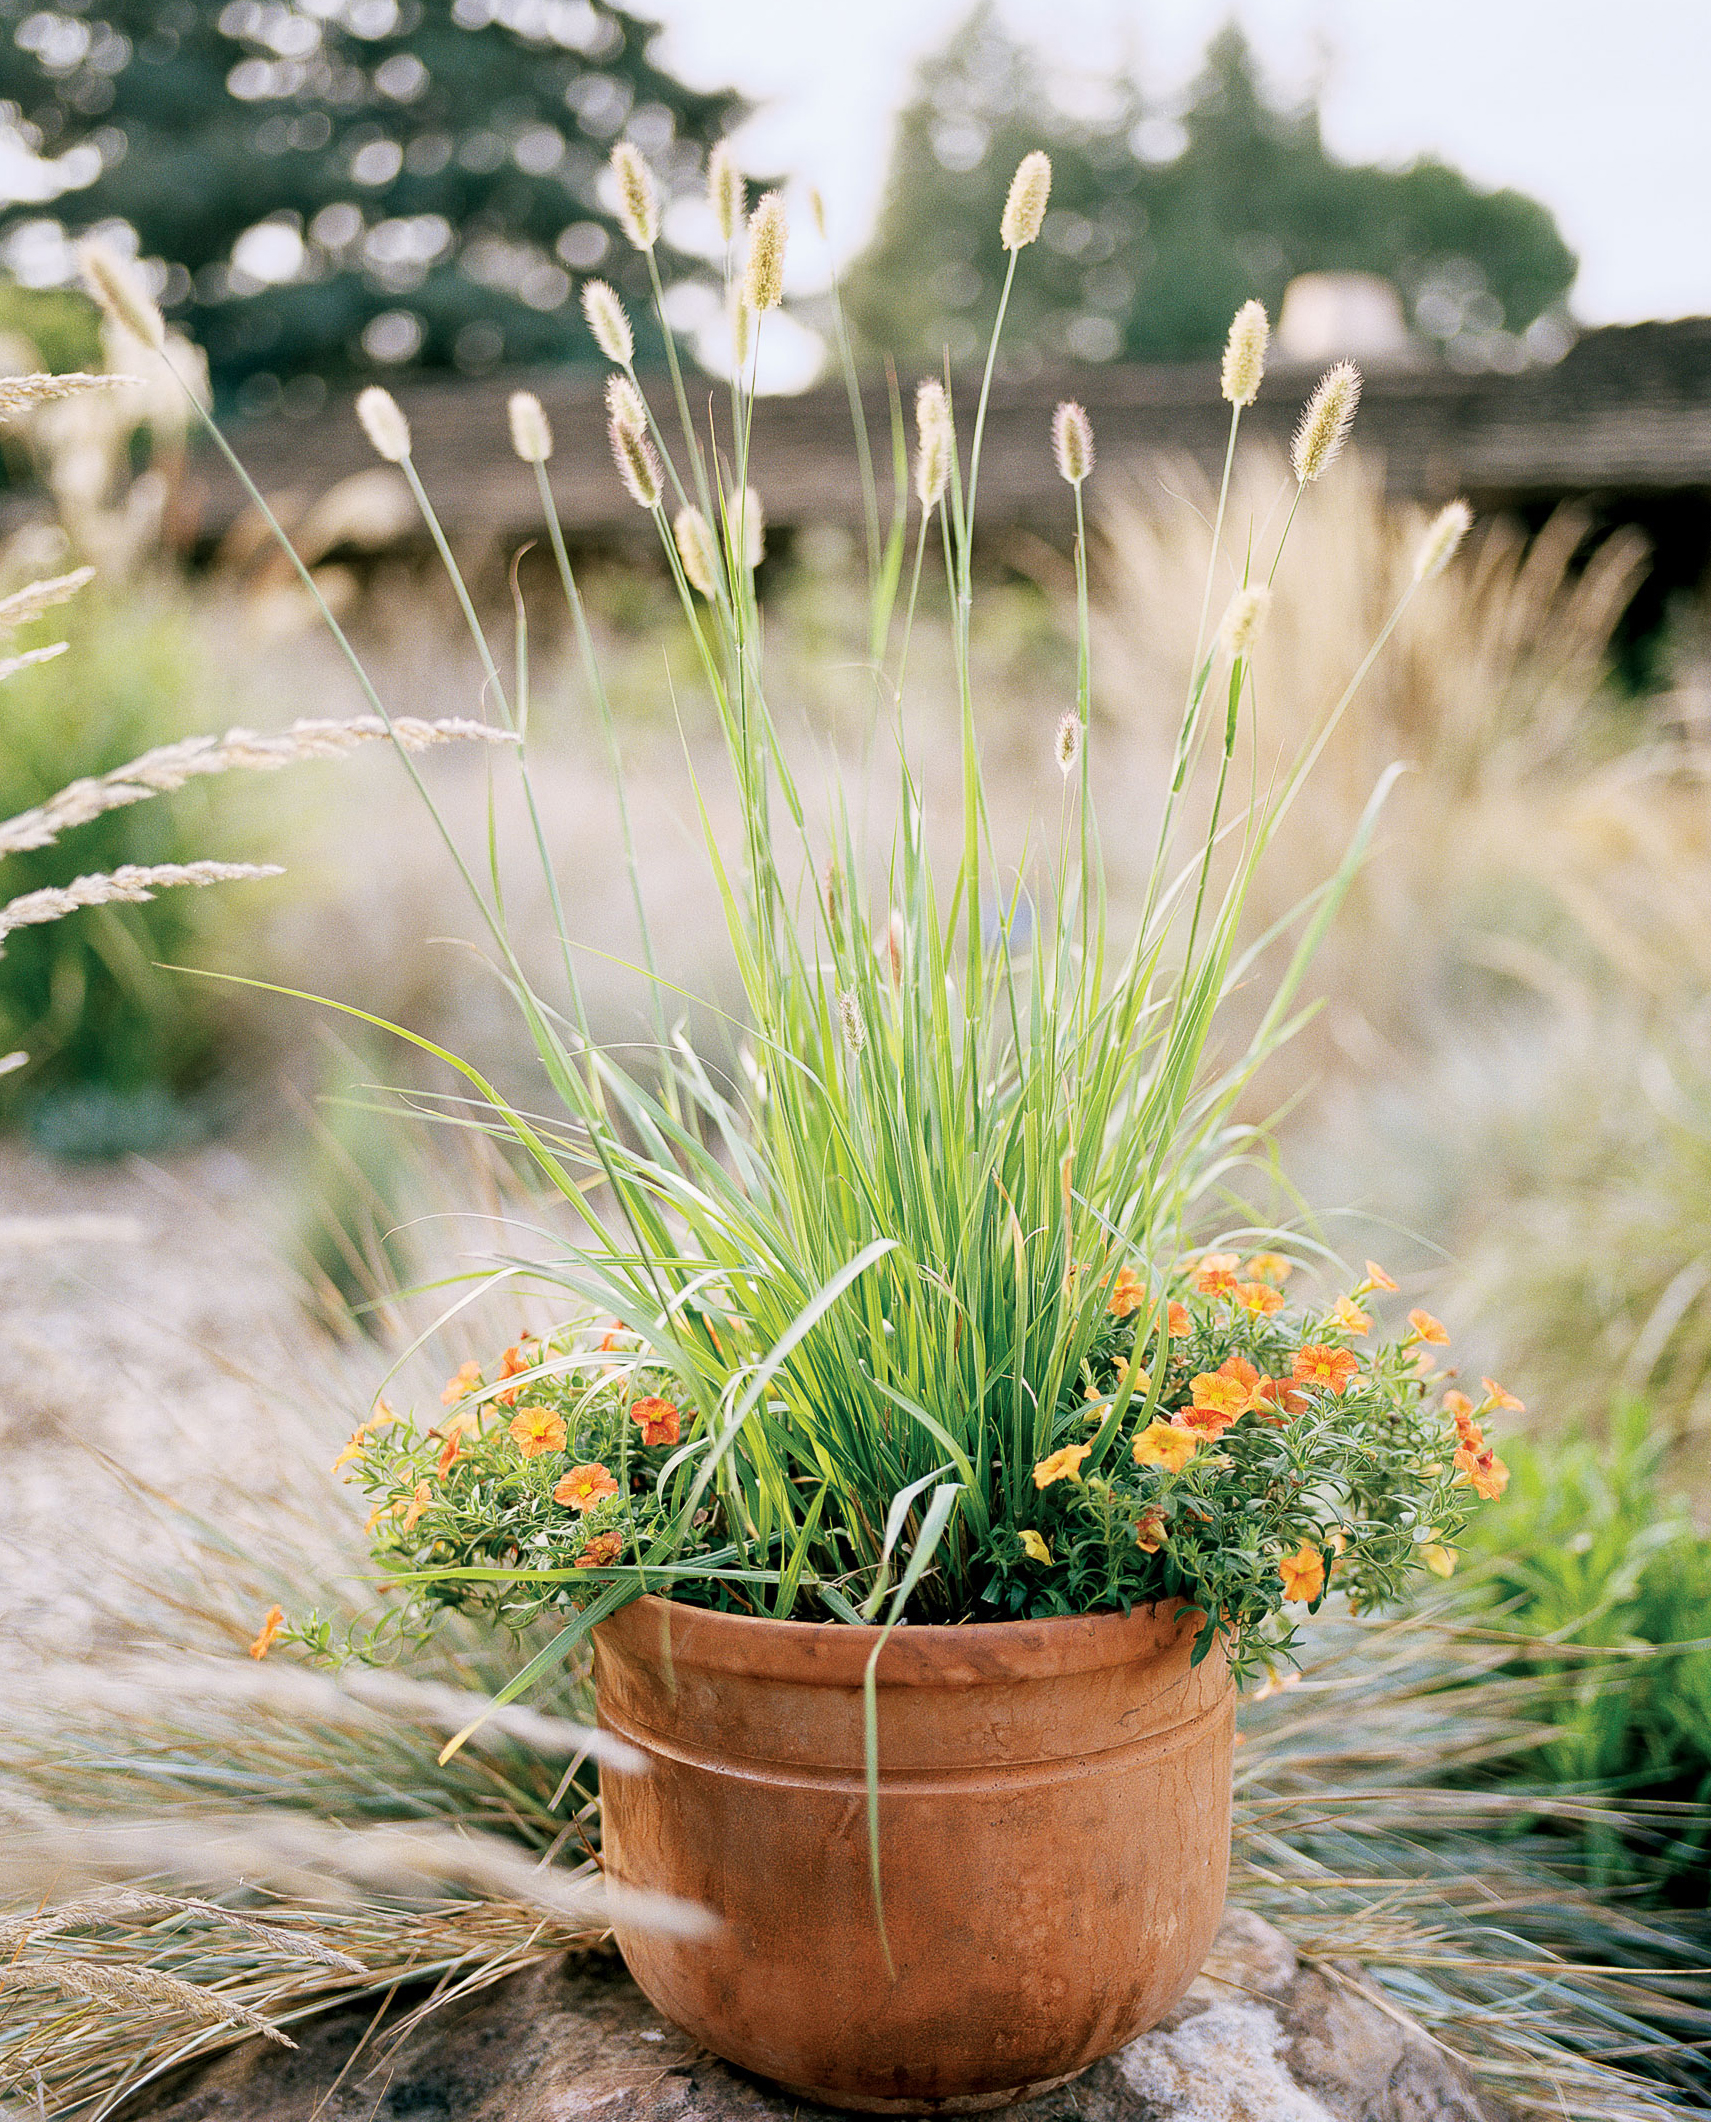 10 favorite ornamental grasses sunset magazine gardening with ornamental grasses autumn allure workwithnaturefo